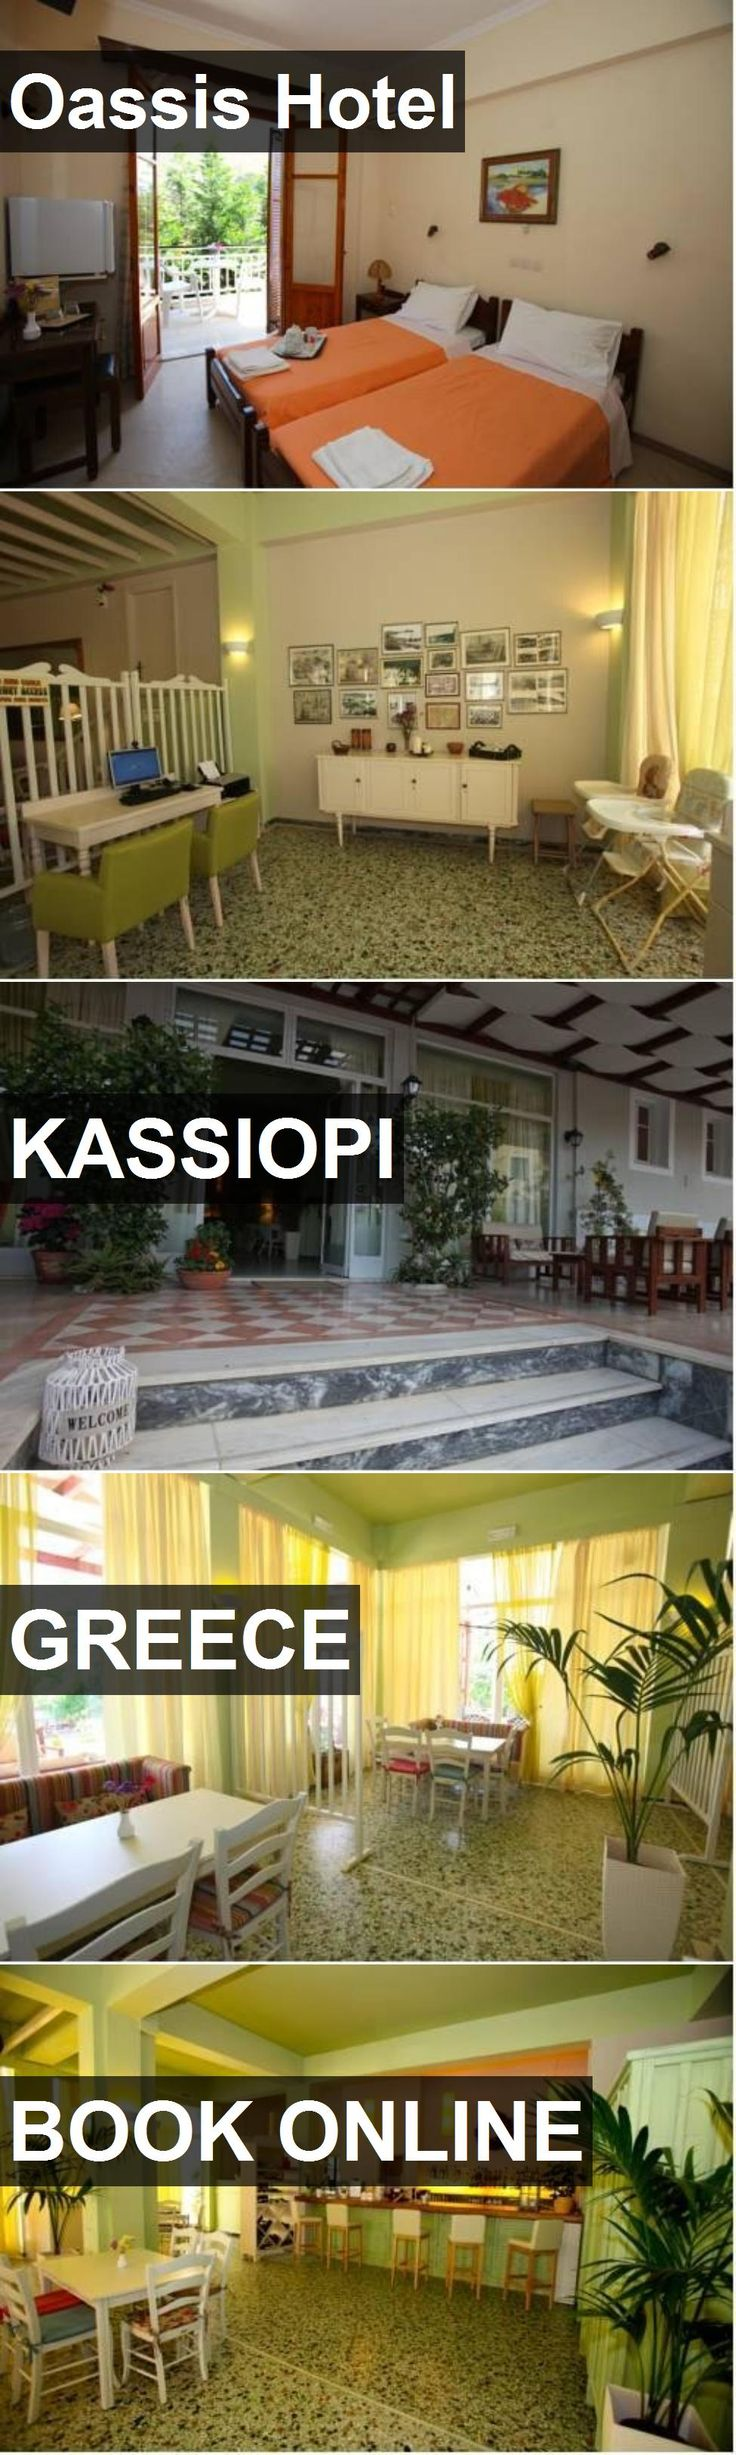 Oassis Hotel in Kassiopi, Greece. For more information, photos, reviews and best prices please follow the link. #Greece #Kassiopi #travel #vacation #hotel